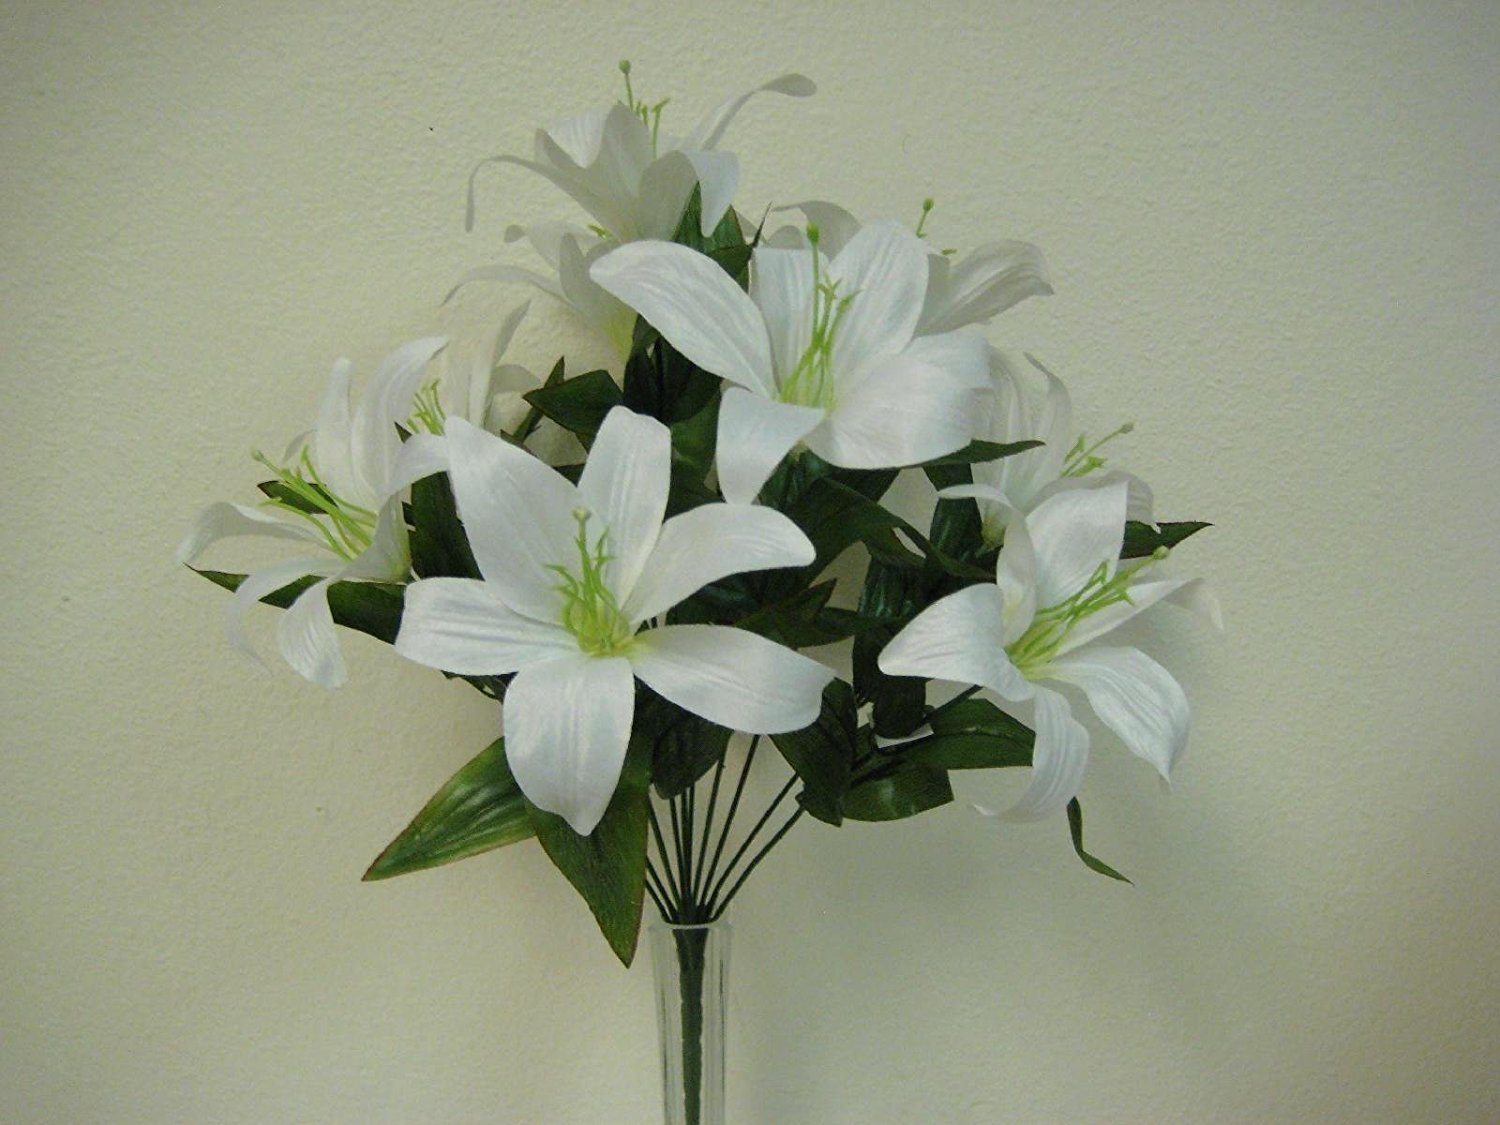 Cheap artificial tiger lily find artificial tiger lily deals on get quotations 2 bushes cream tiger lily artificial silk flowers 1 x 10 bouquet 4069cr izmirmasajfo